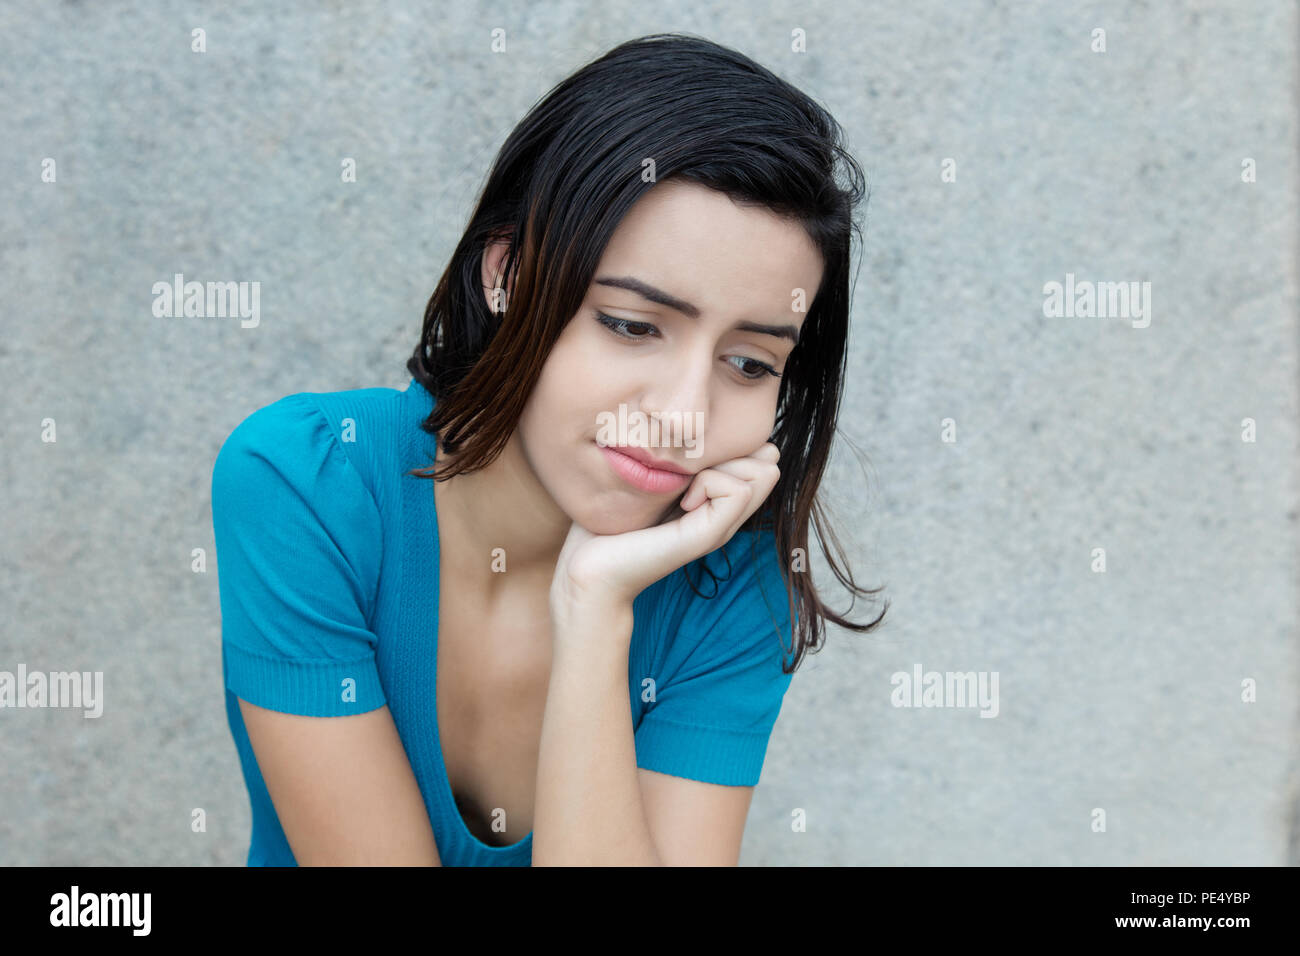 Bullied latin american young adult woman outdoors with copy space - Stock Image